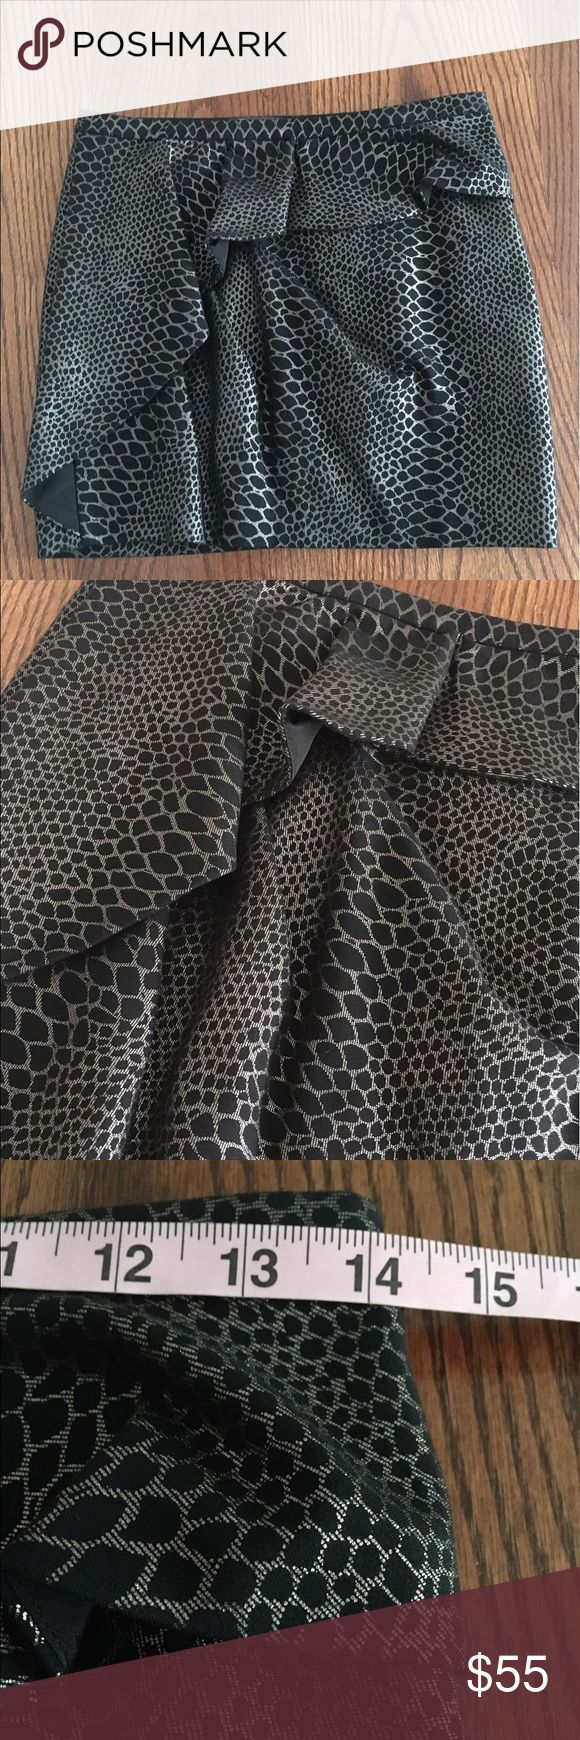 "Armani Exchange black and gray ruffled mini skirt Samantha says... • brand: Armani Exchange  • size: 0 • black and gray ruffled mini skirt  • snake skin look to it  • perfect for a night out or date night   Measurements: • waist: 14"" across  • length: 14""  #ax #armani #armaniexchange #black #gray #grey #ruffles #miniskirt #skirt #mini #ruffled #size0 #sizezero #zero #sexy #datenight #samtalee613 A/X Armani Exchange Skirts Mini"